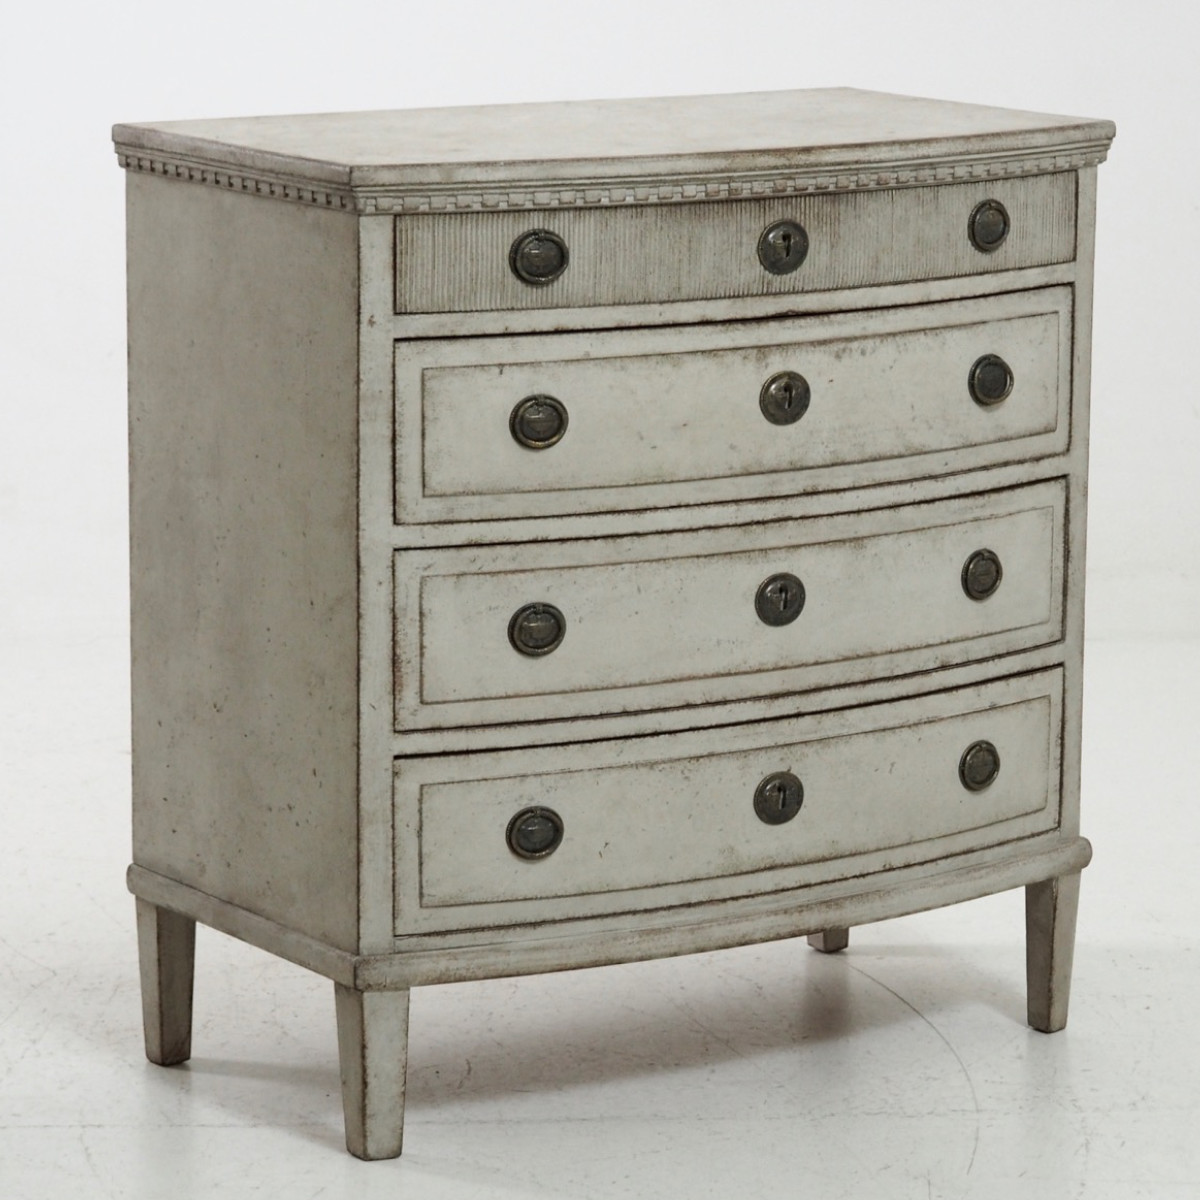 Gustavian style chest, 19th C. - € 1.800